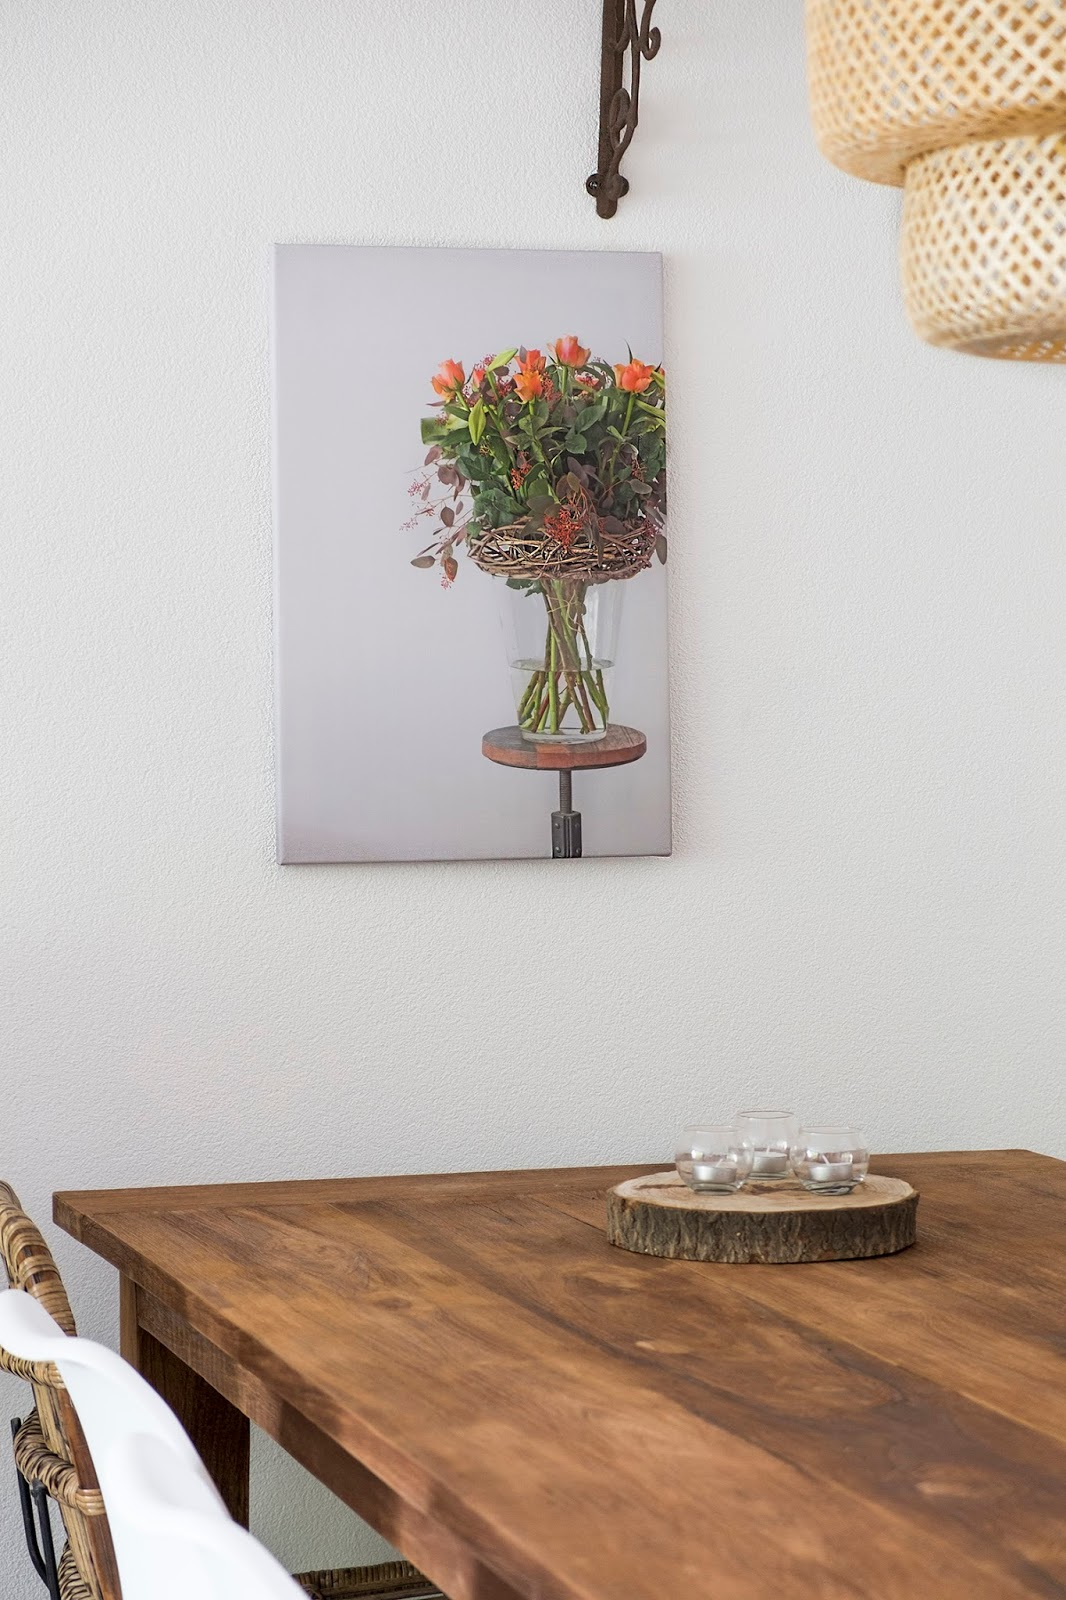 Foto op canvas, interieur idee